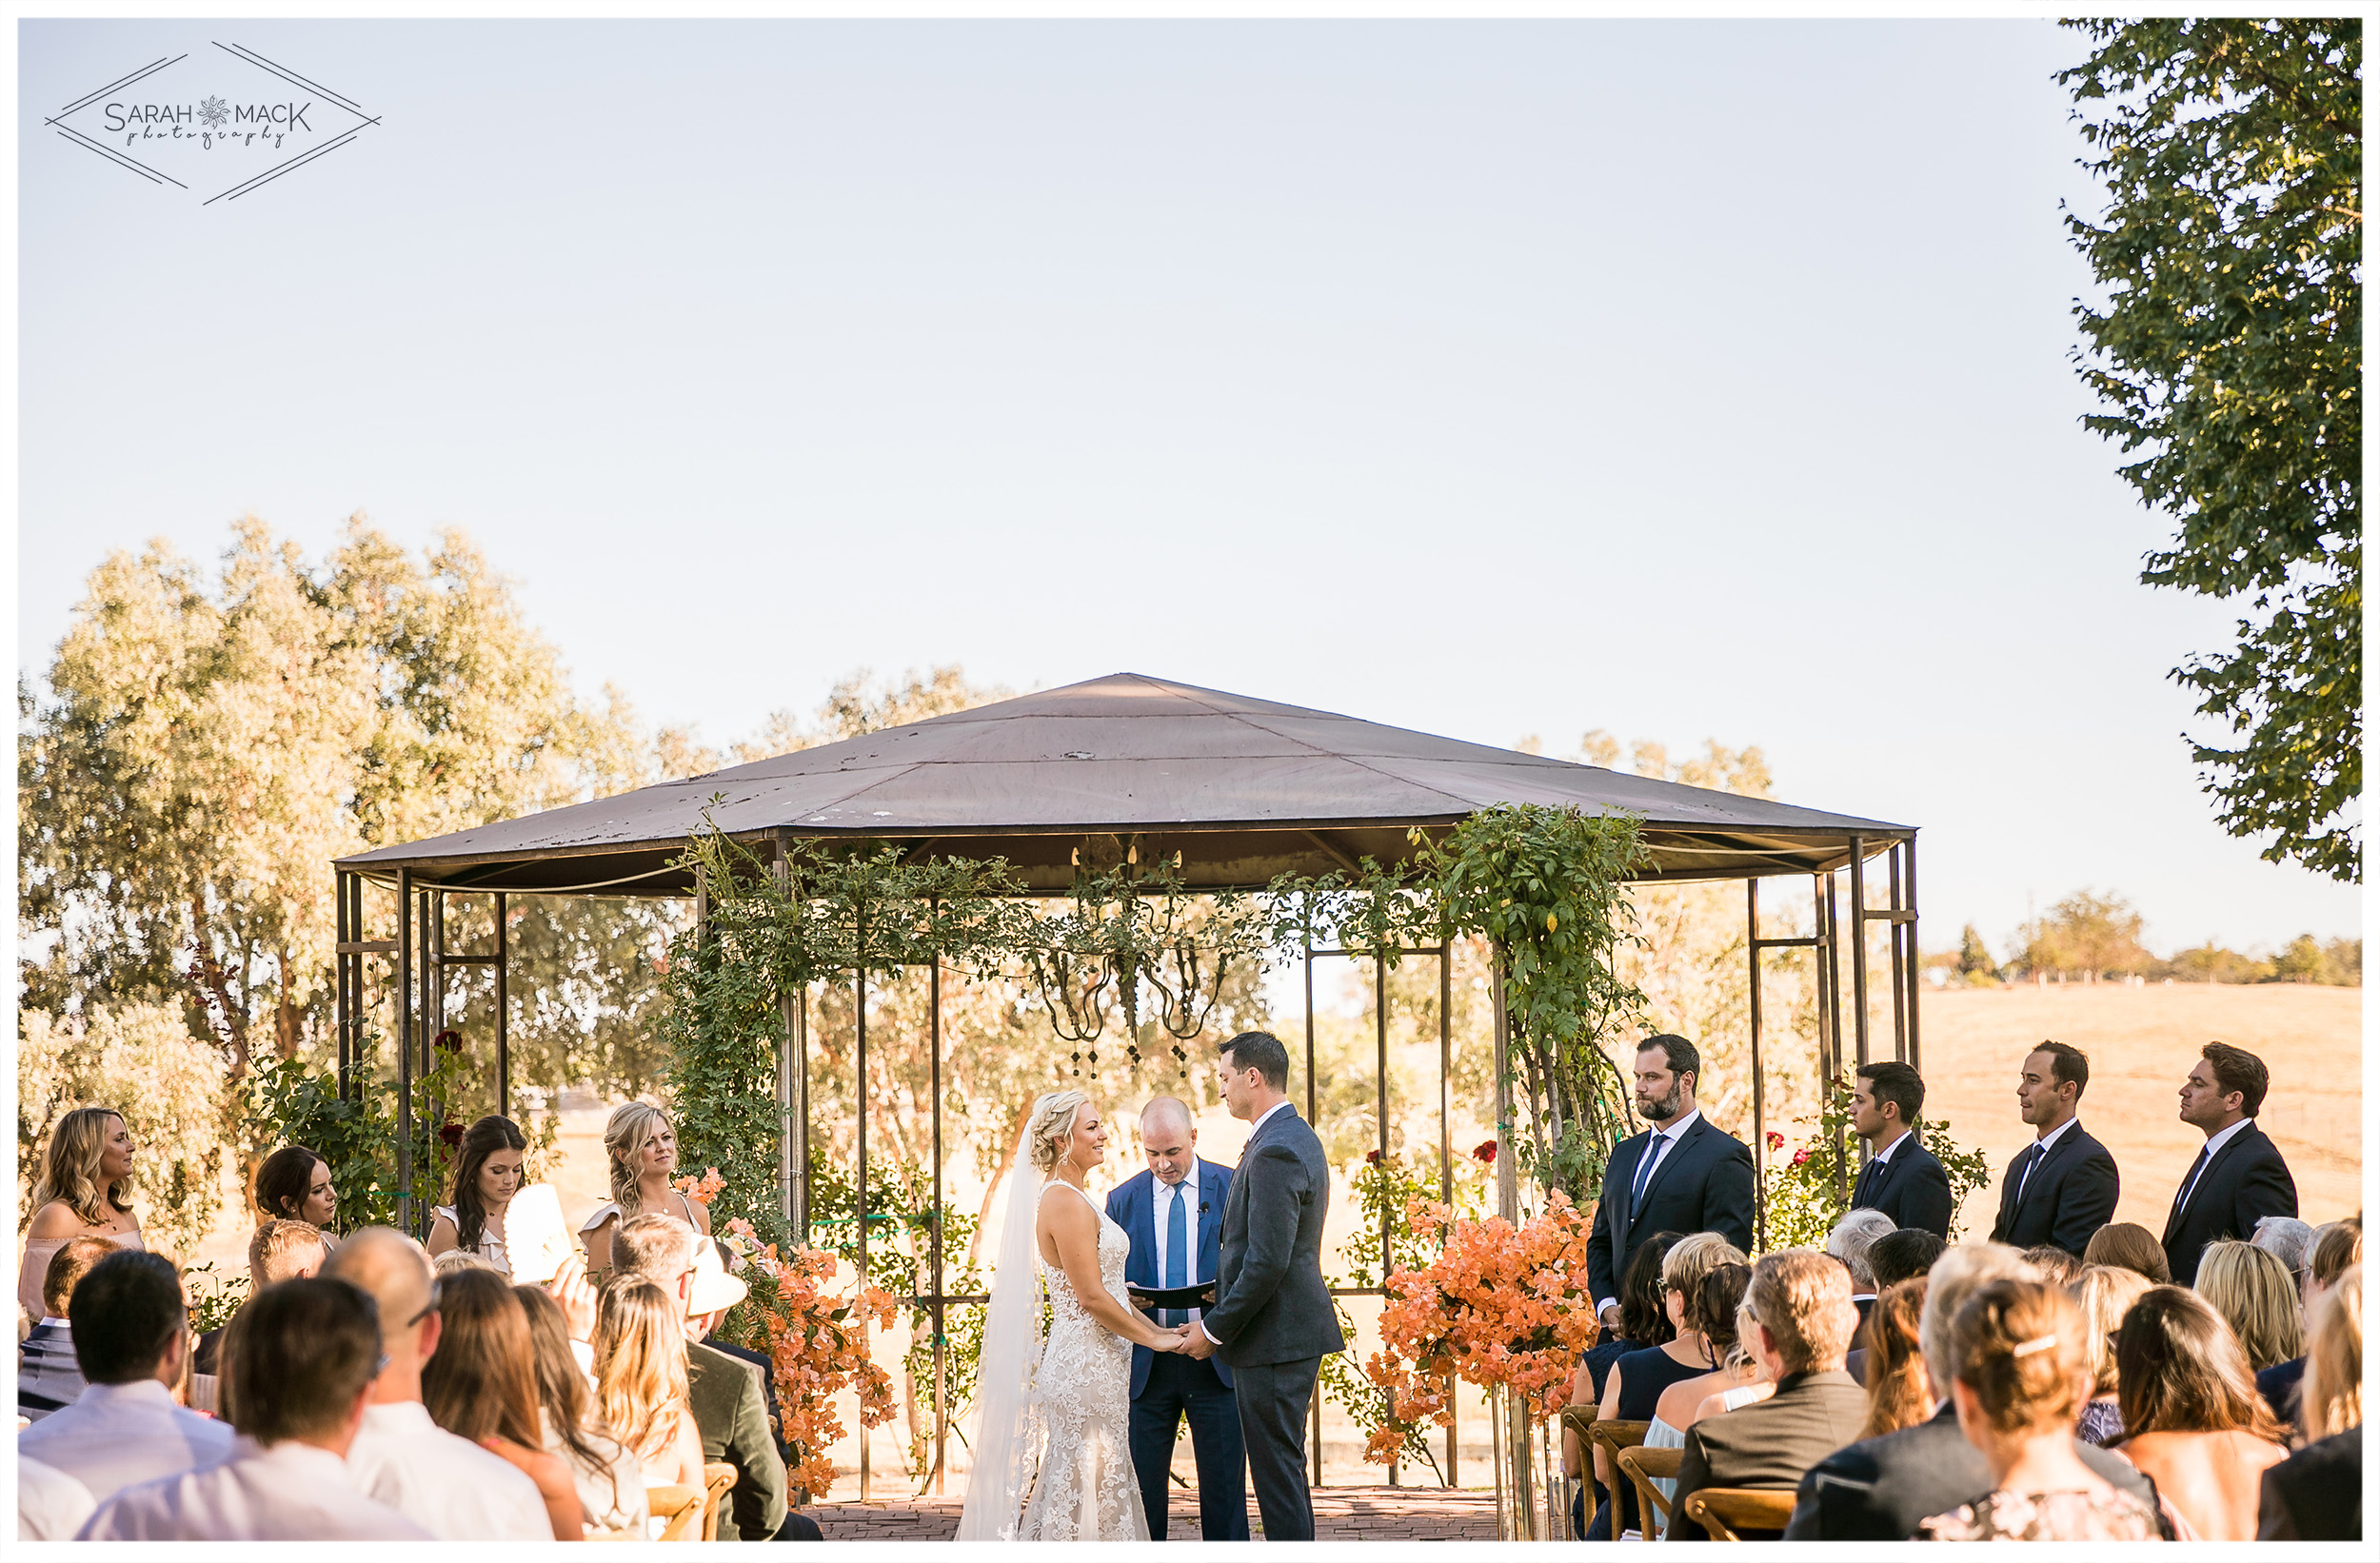 MA-Chandler-Ranch-Paso-Robles-Wedding-Photography-63.jpg